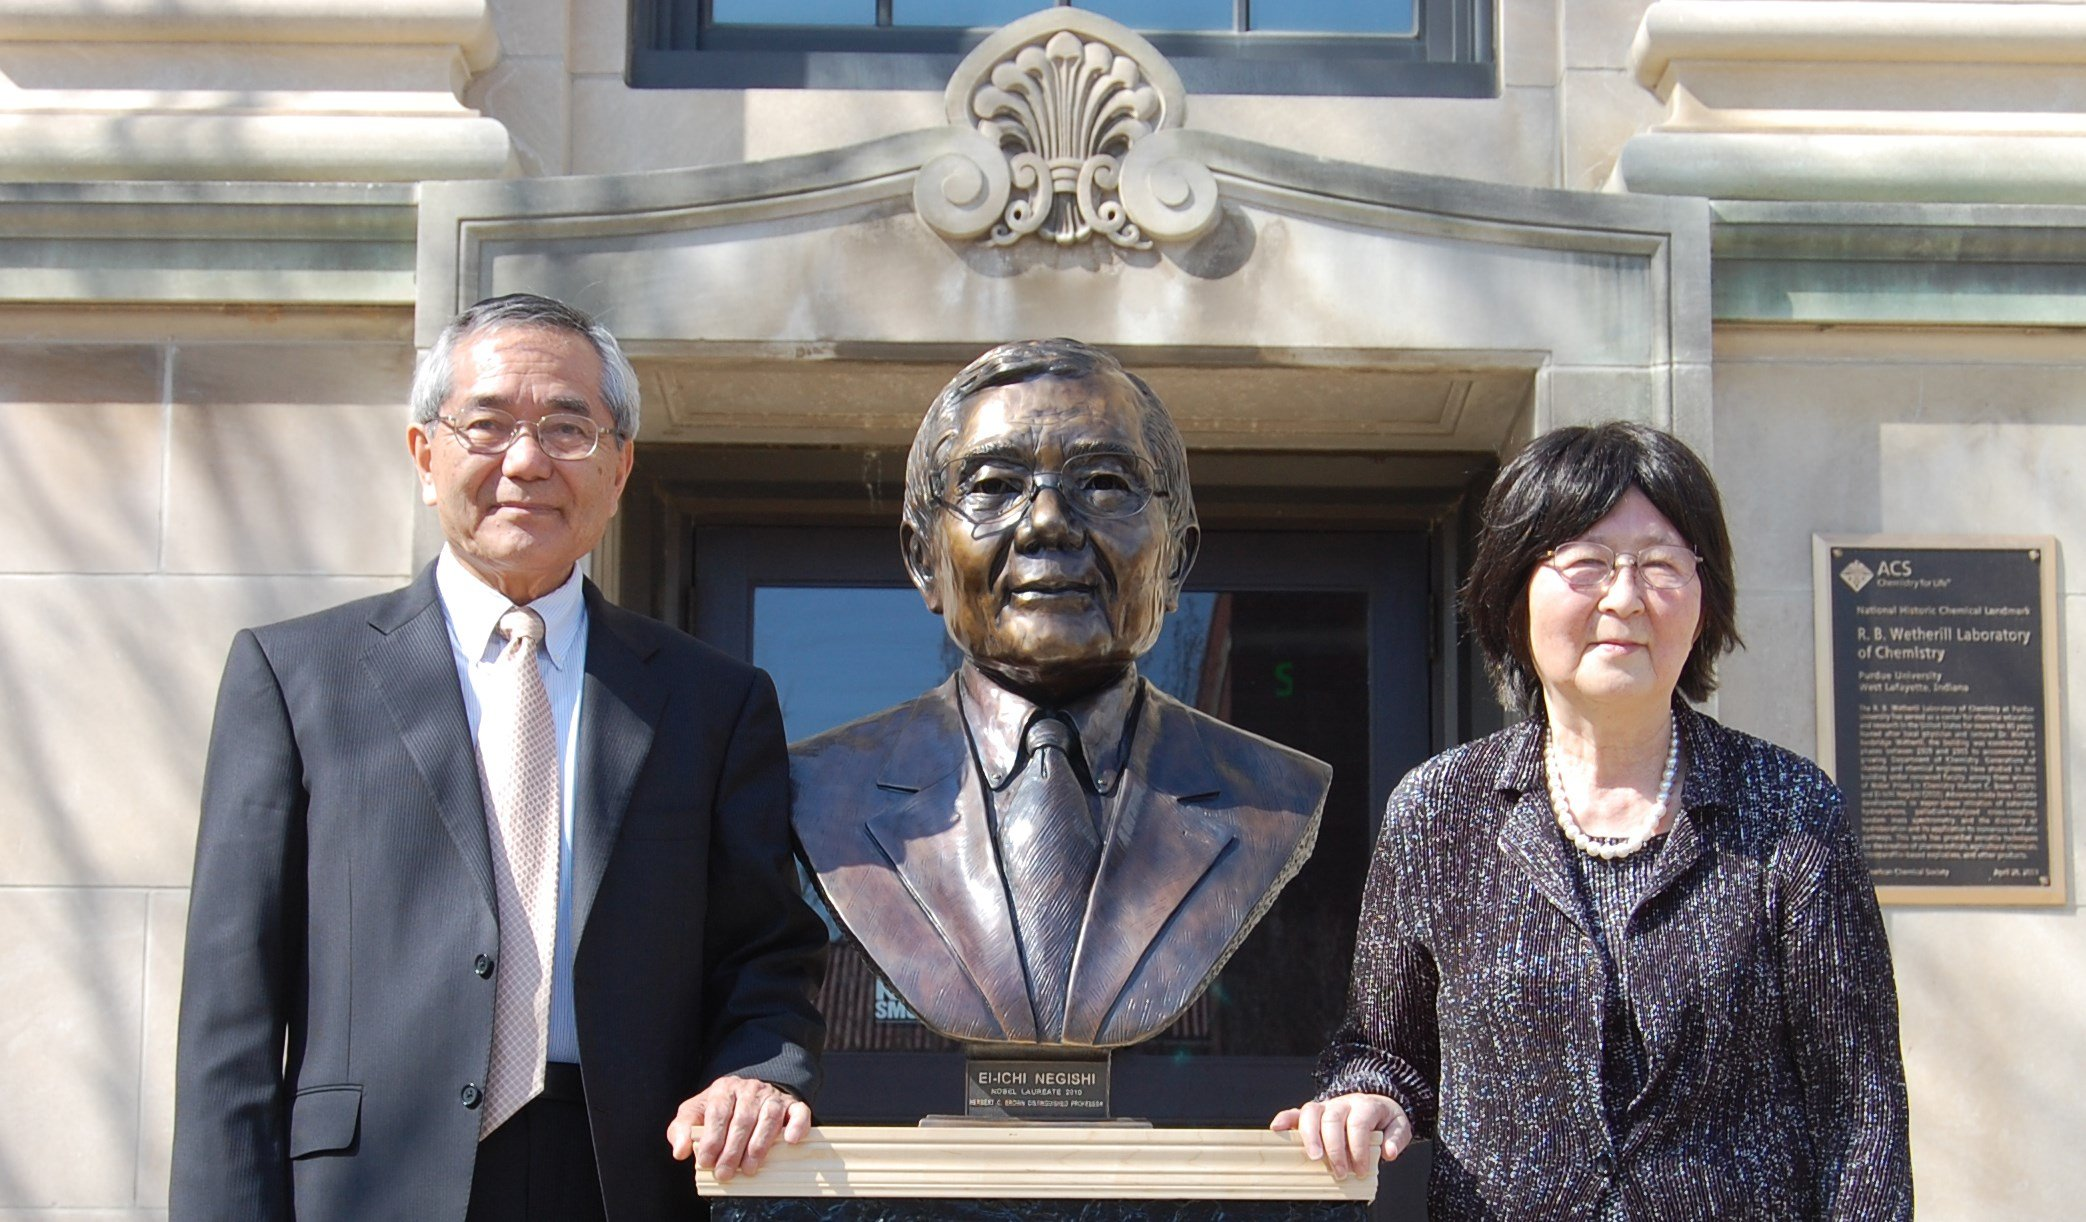 Nobel laureate Ei-ichi Negishi and his wife, Sumire, stand with a bronze bust unveiled at Purdue on April 18, 2014. (Photo//Purdue University photo/Steve Scherer)